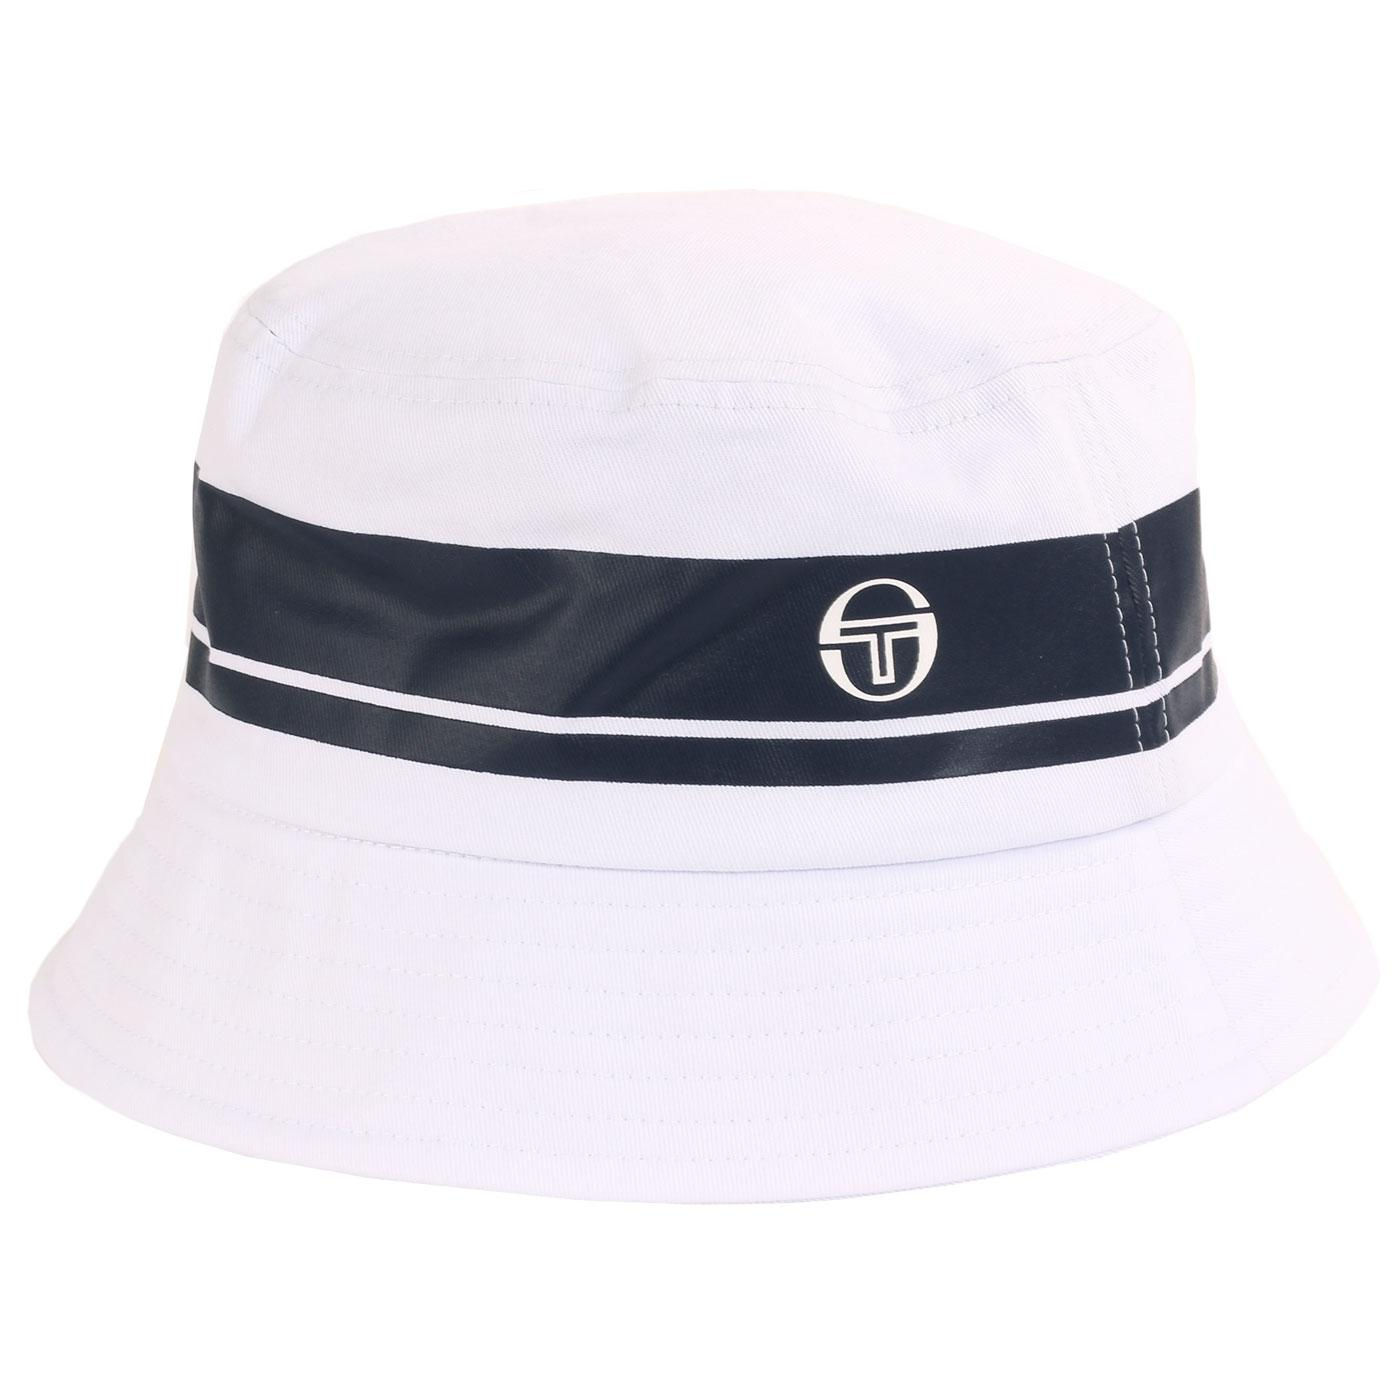 Greater SERGIO TACCHINI Retro 90s Bucket Hat WHITE